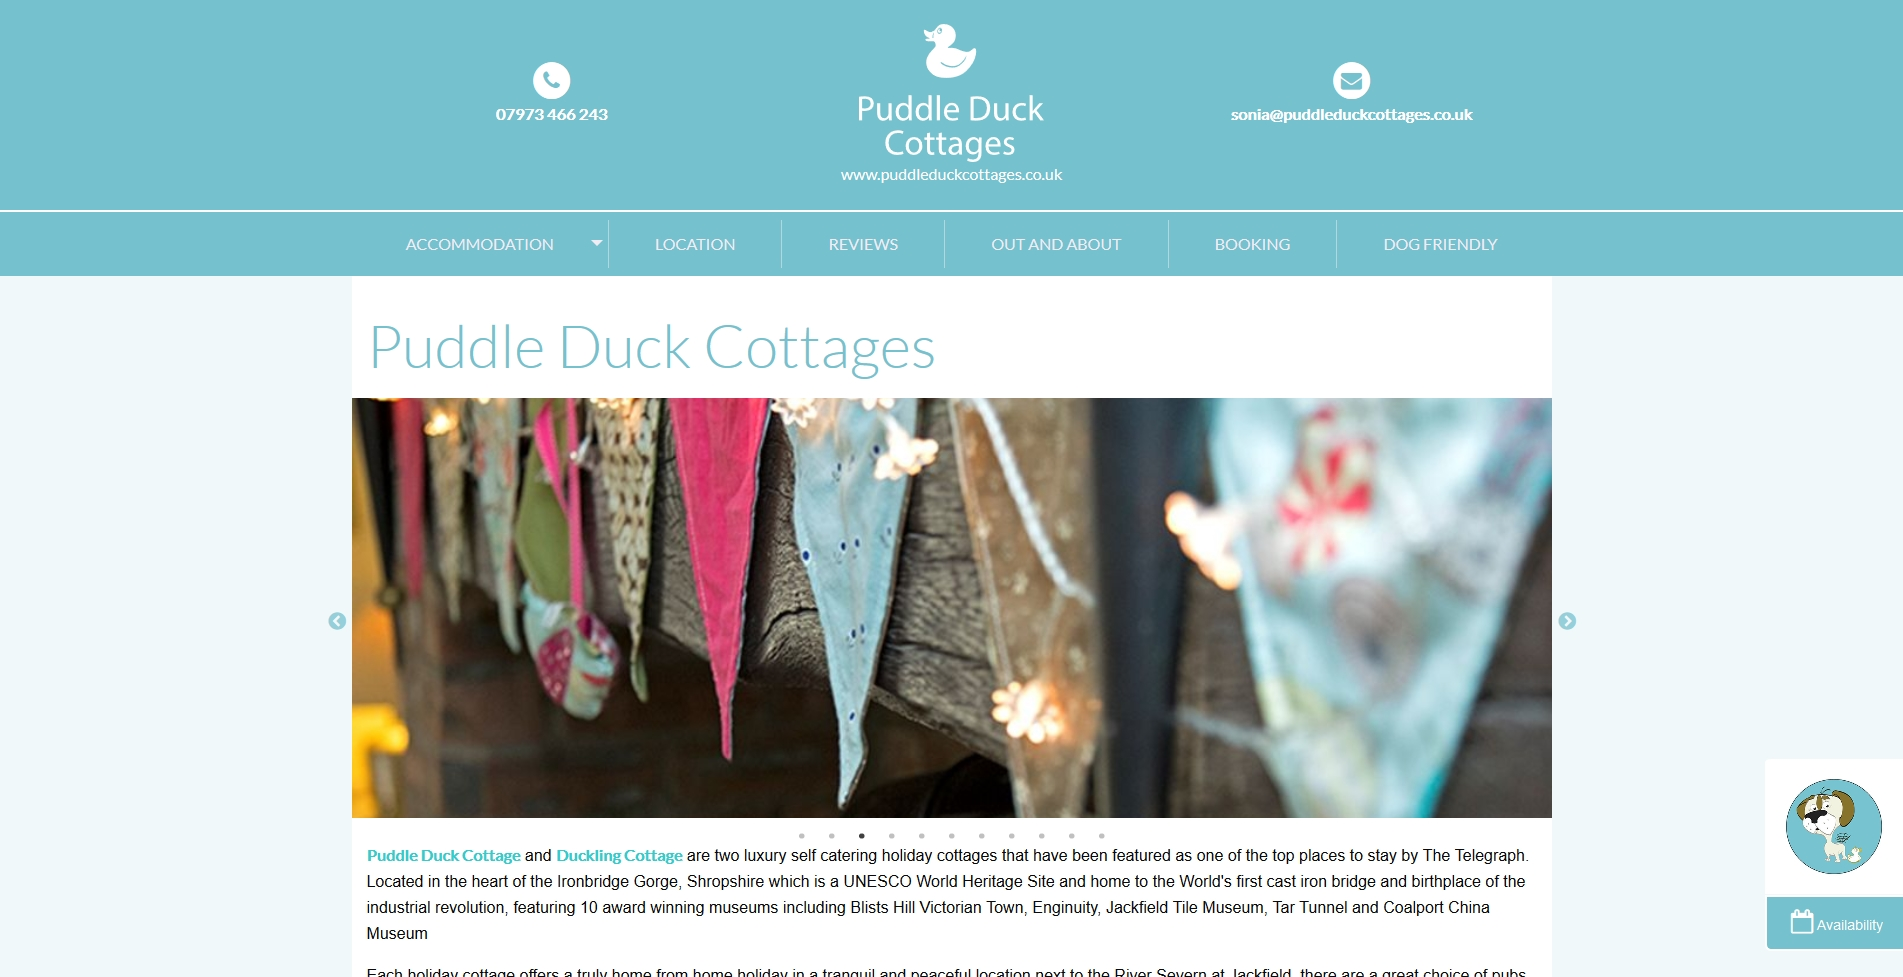 puddleduckcottages.co.uk